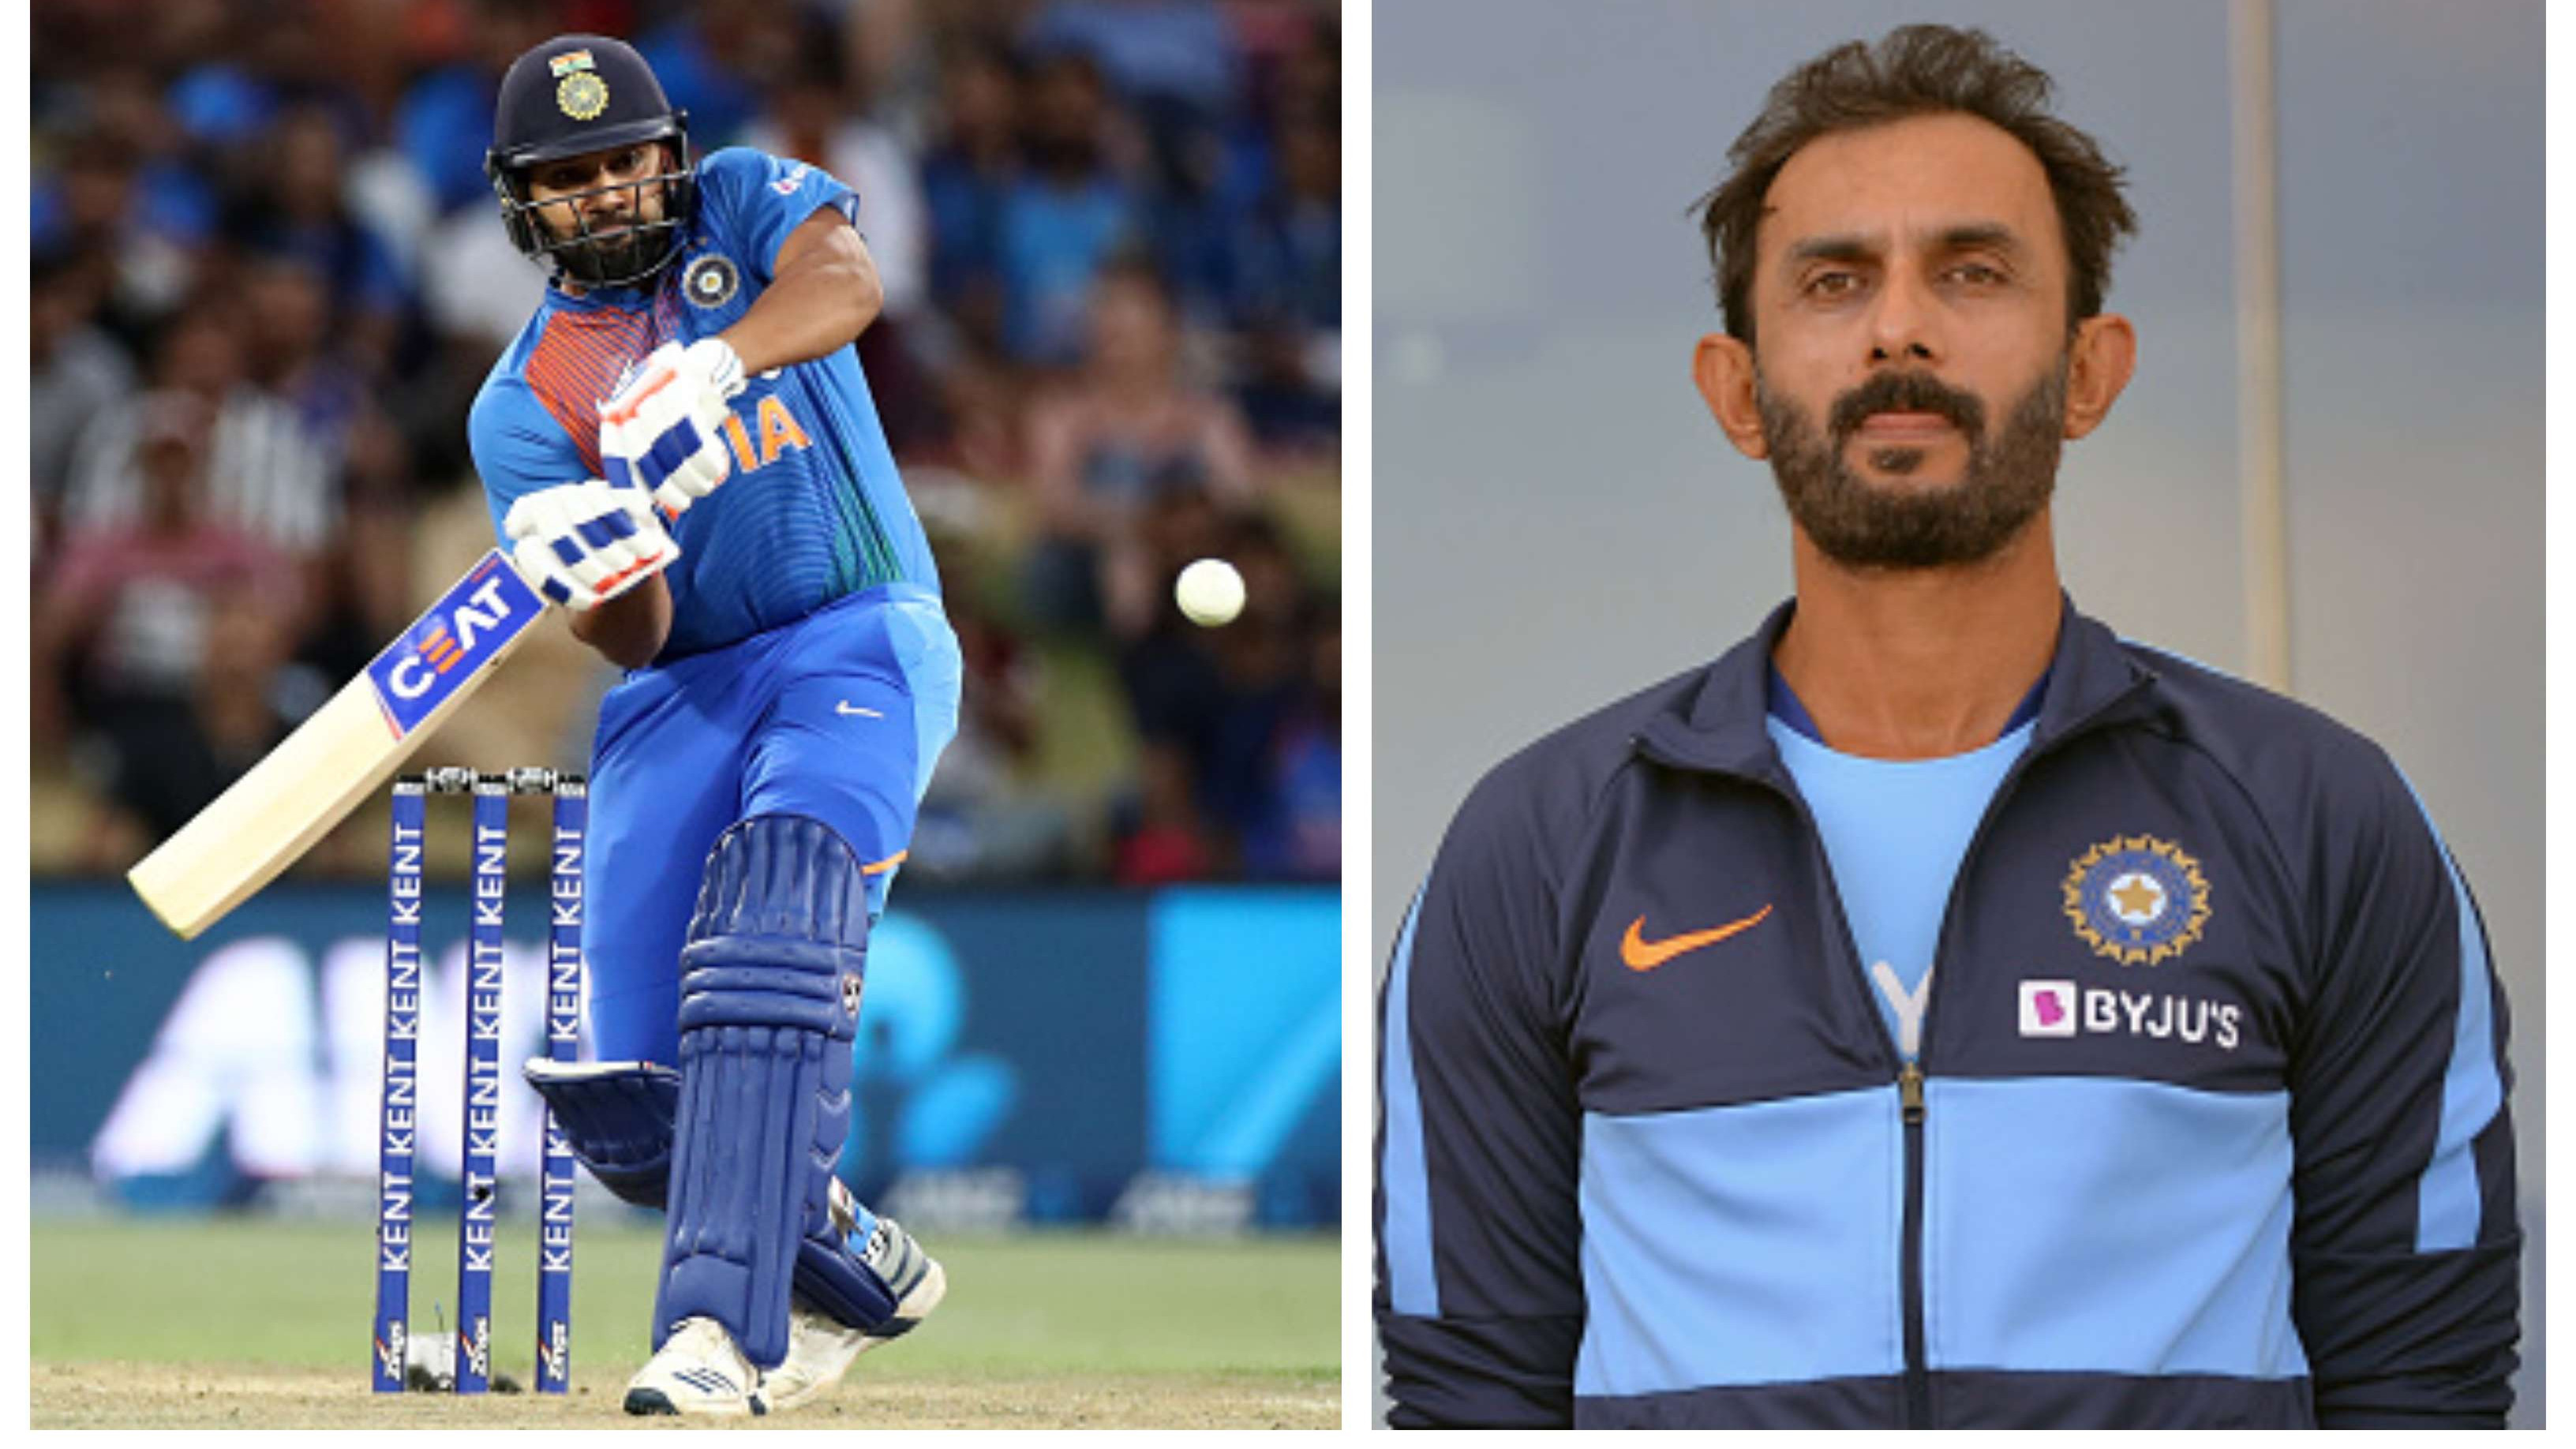 IND v ENG 2021: Won't like to see Rohit Sharma making any change to his approach in T20Is, says Vikram Rathour